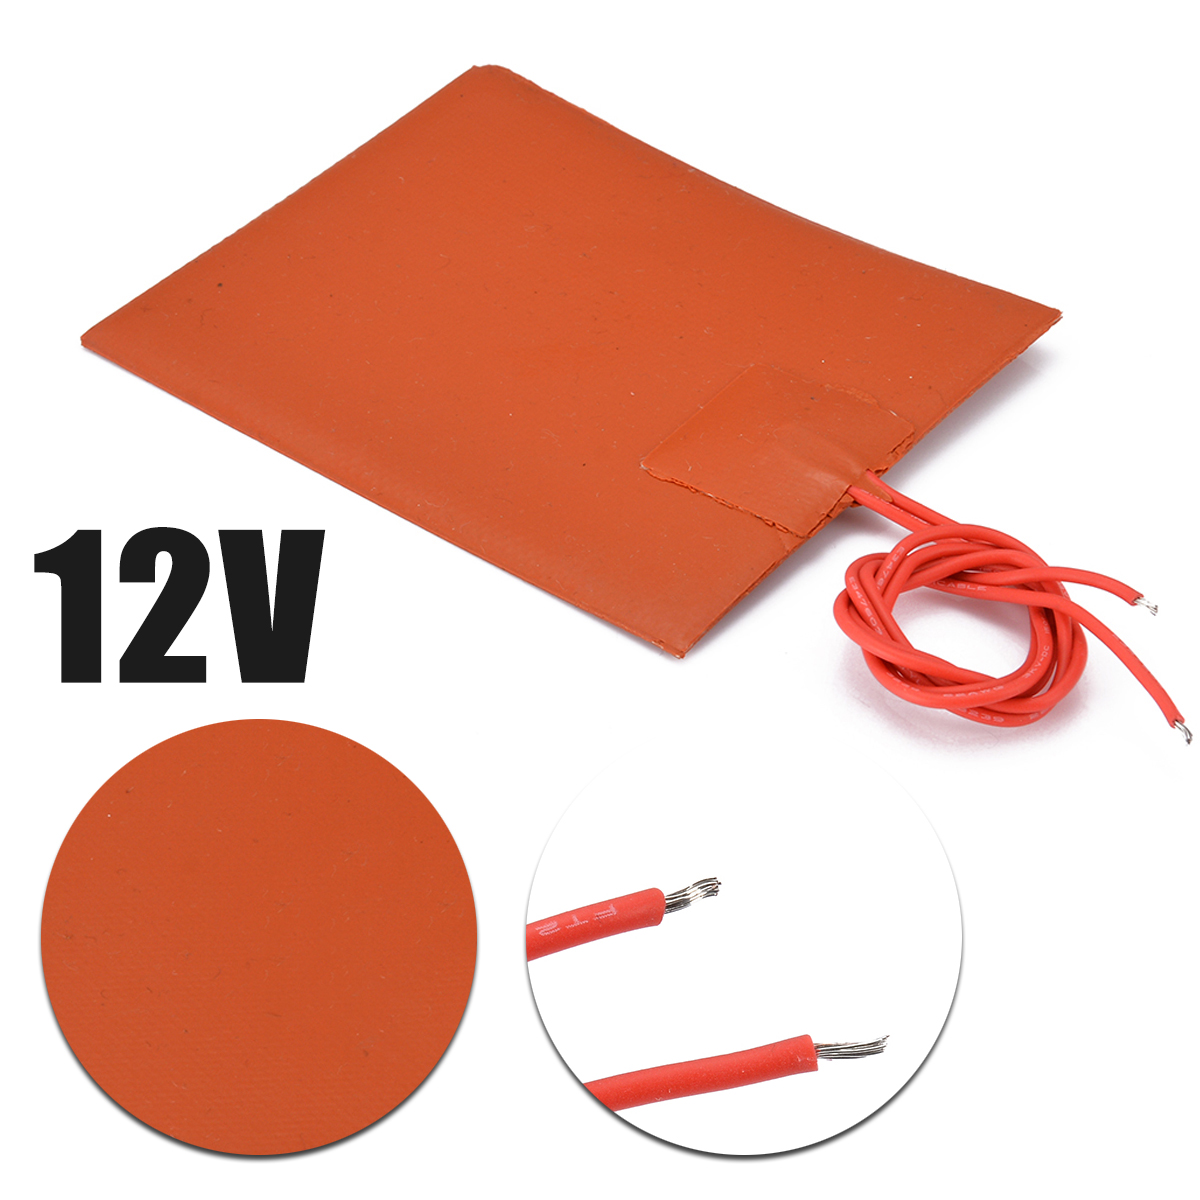 80x100mm 12V DC 20W Silicone Heated Bed Heating Pad Flexible Waterproof For 3D Printer Parts Electric Heating Pads eye shadow